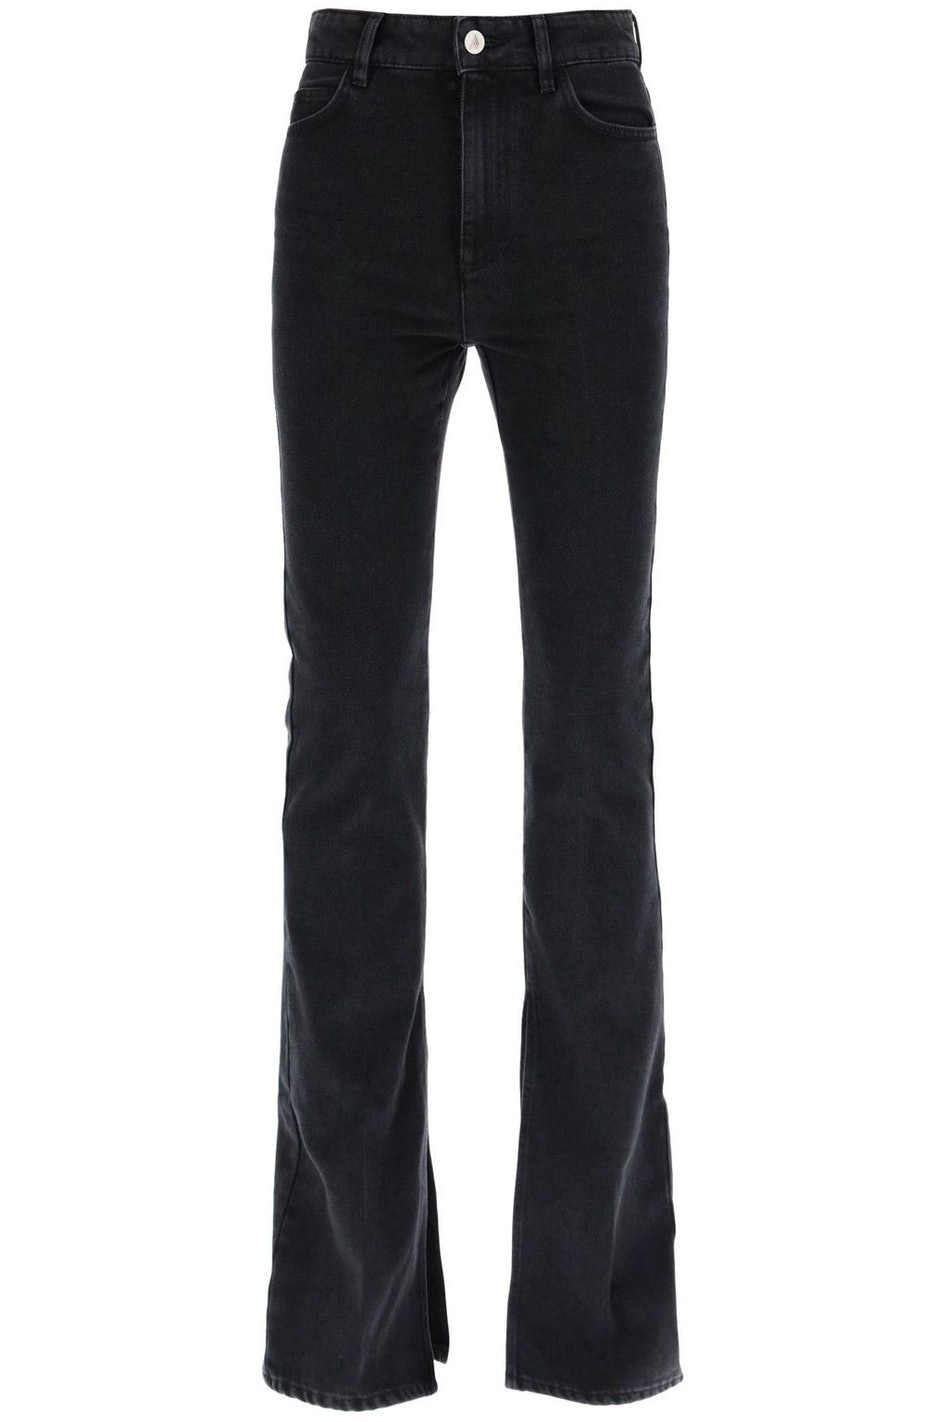 The Attico Flared Jeans: additional image